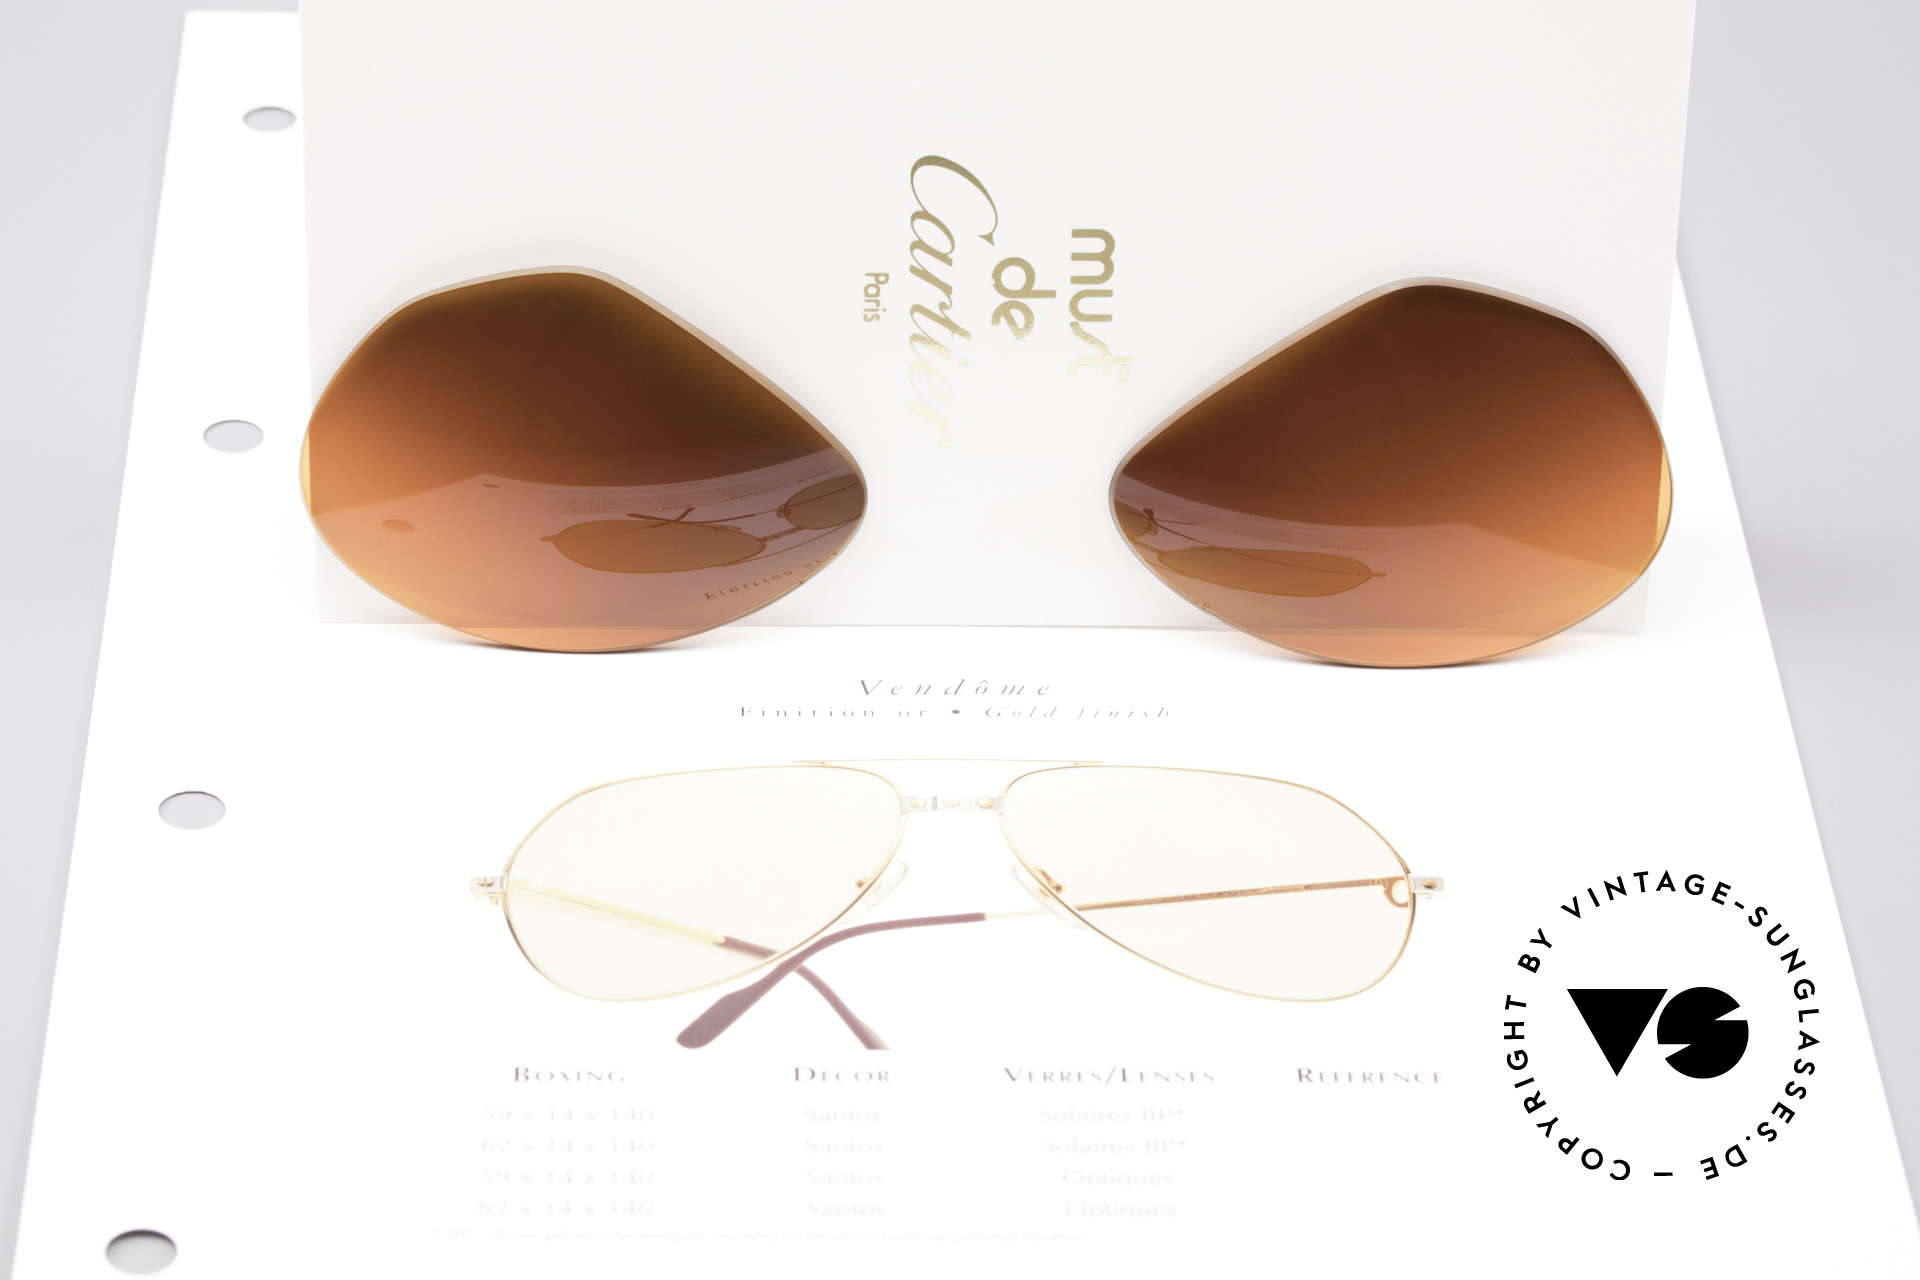 Cartier Vendome Lenses - L Sun Lenses Sunset Gradient, the sun lenses are tinted like a sunset (auburn gradient), Made for Men